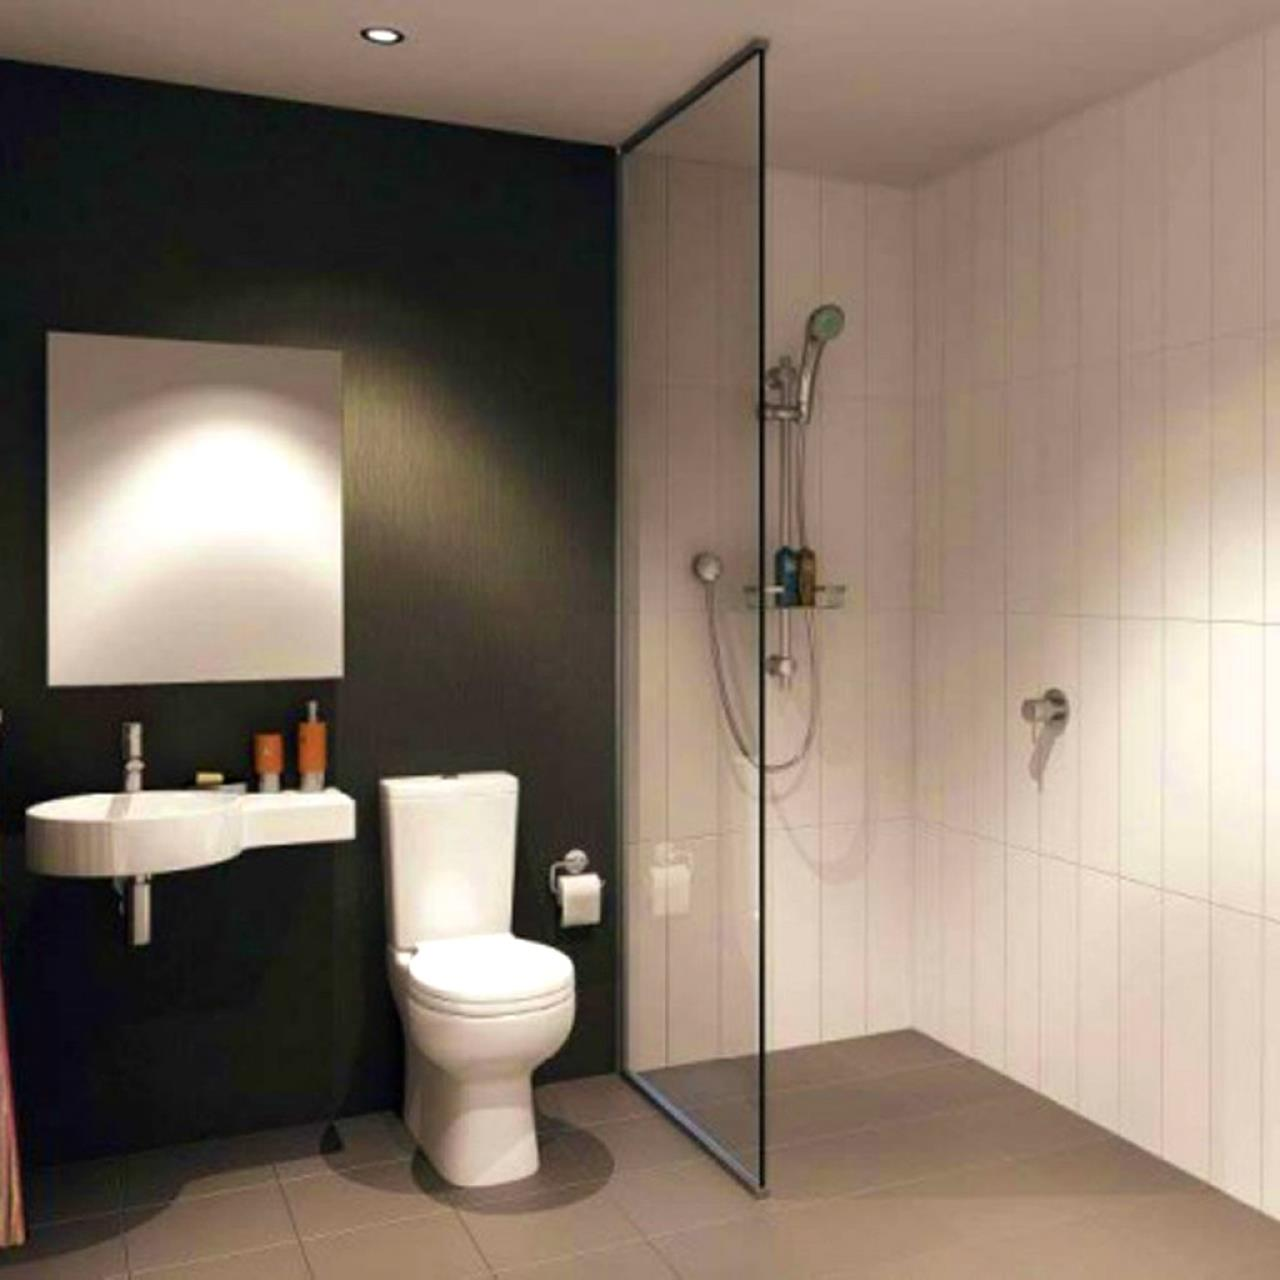 Apartment Bathrooms Ideas Bathroom Designs: Apartment Bathroom Decorating Ideas 25